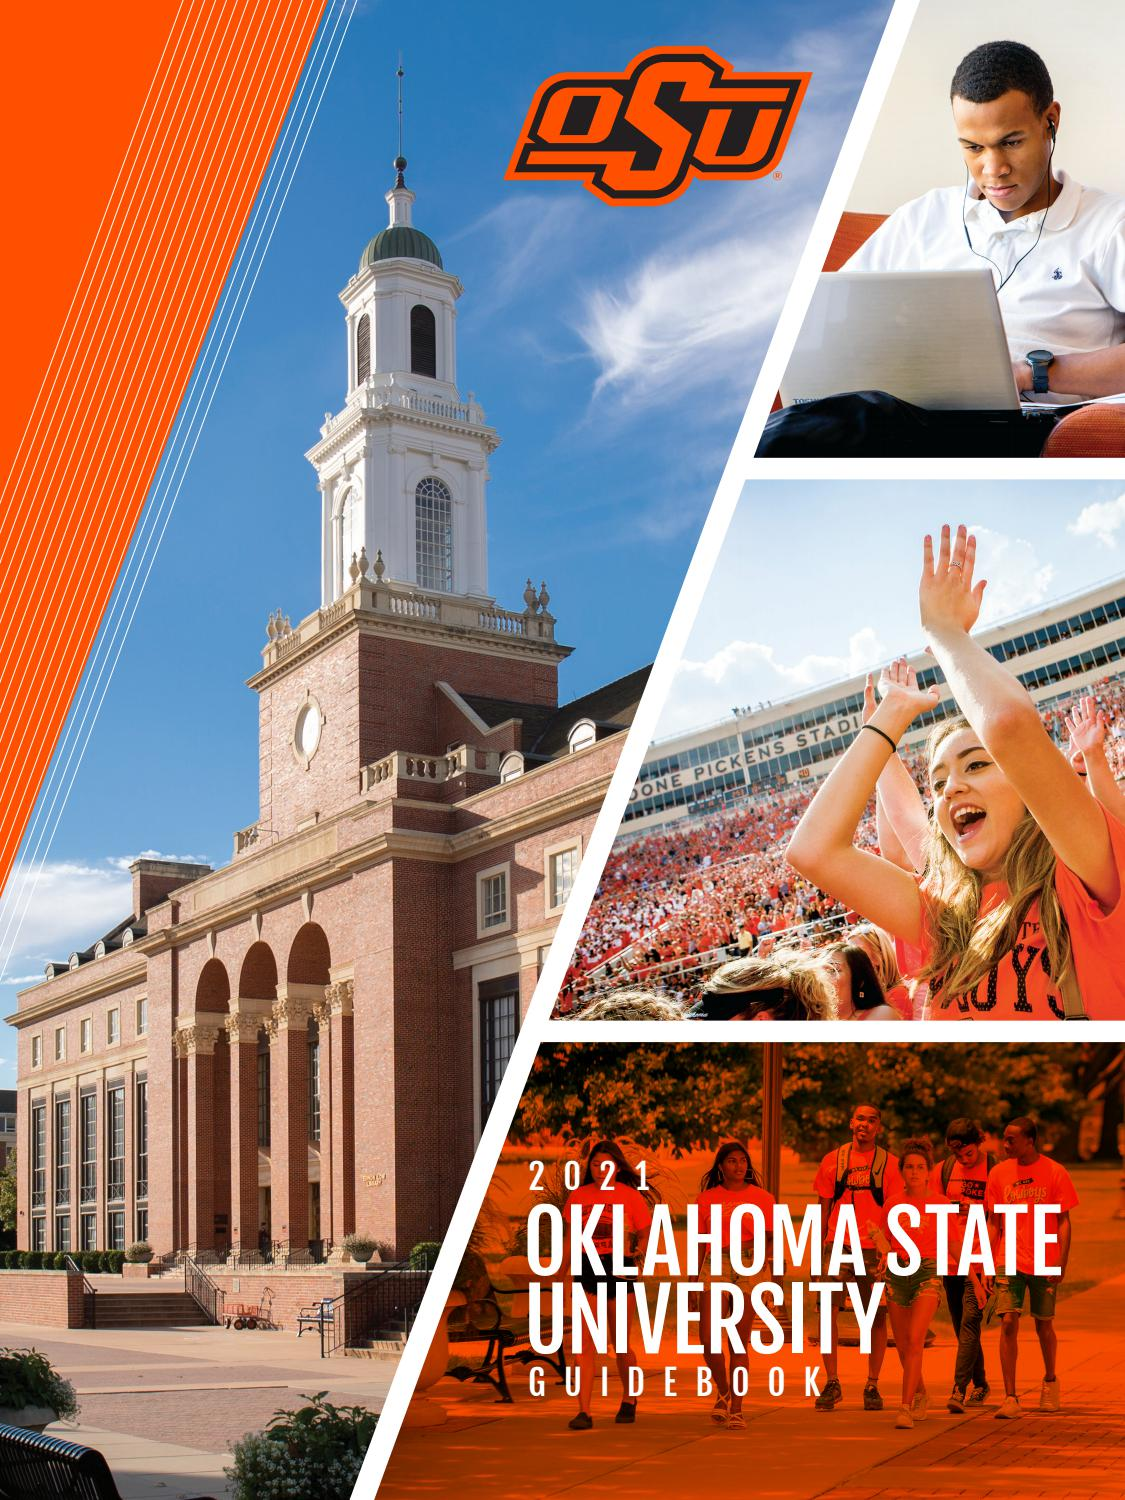 Okstate Academic Calendar 2022.2021 Oklahoma State University First Year Guidebook By Oklahoma State Issuu